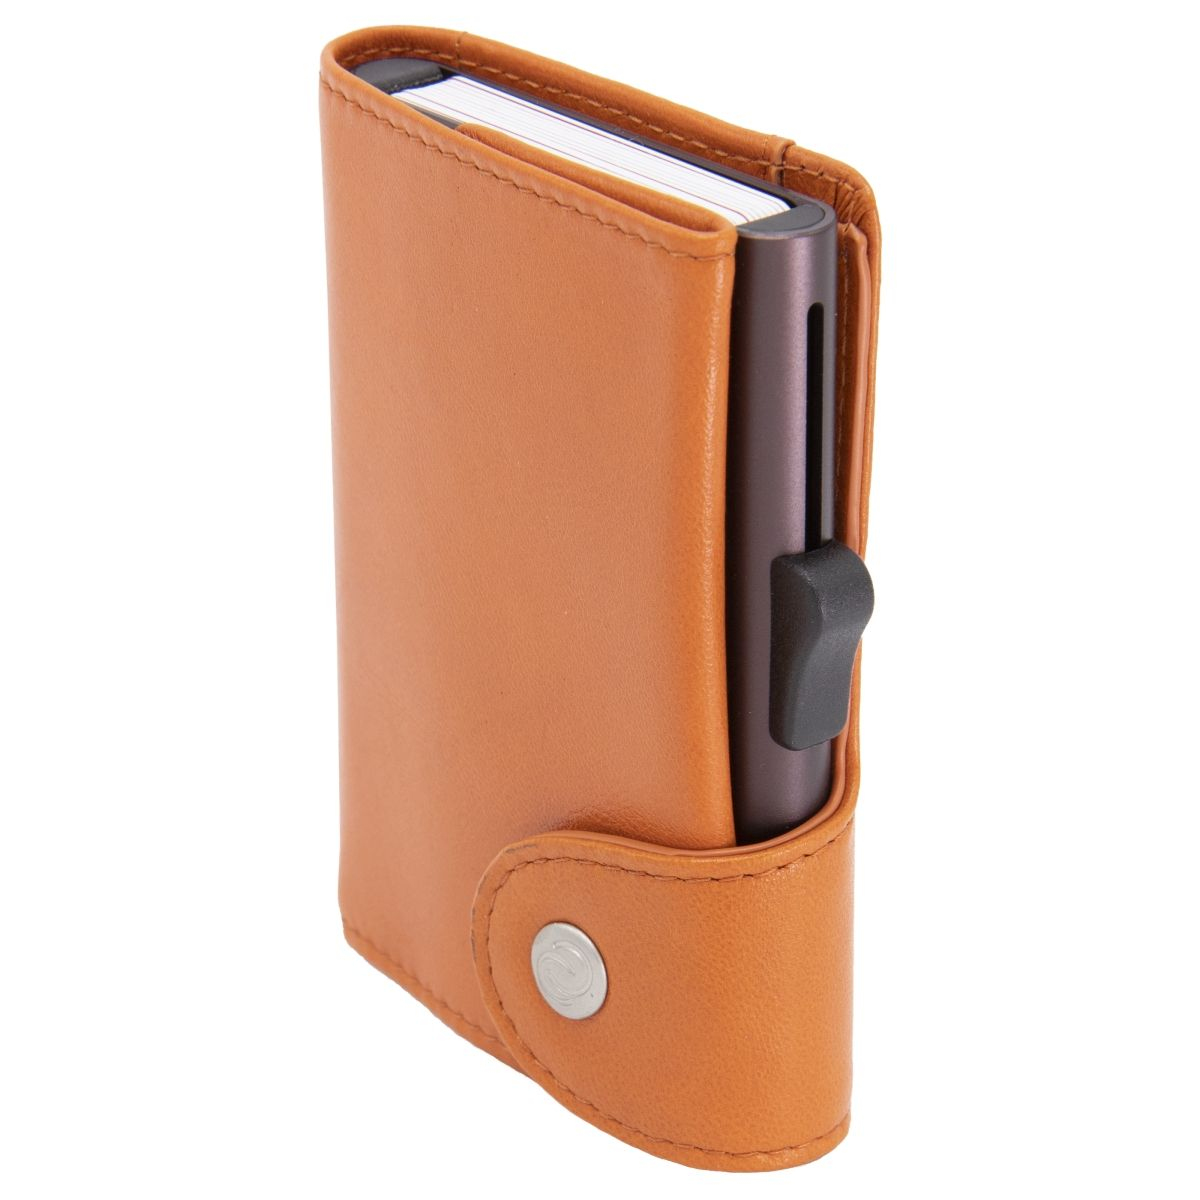 XL Aluminum Wallet with Genuine Leather - Arancio Orange